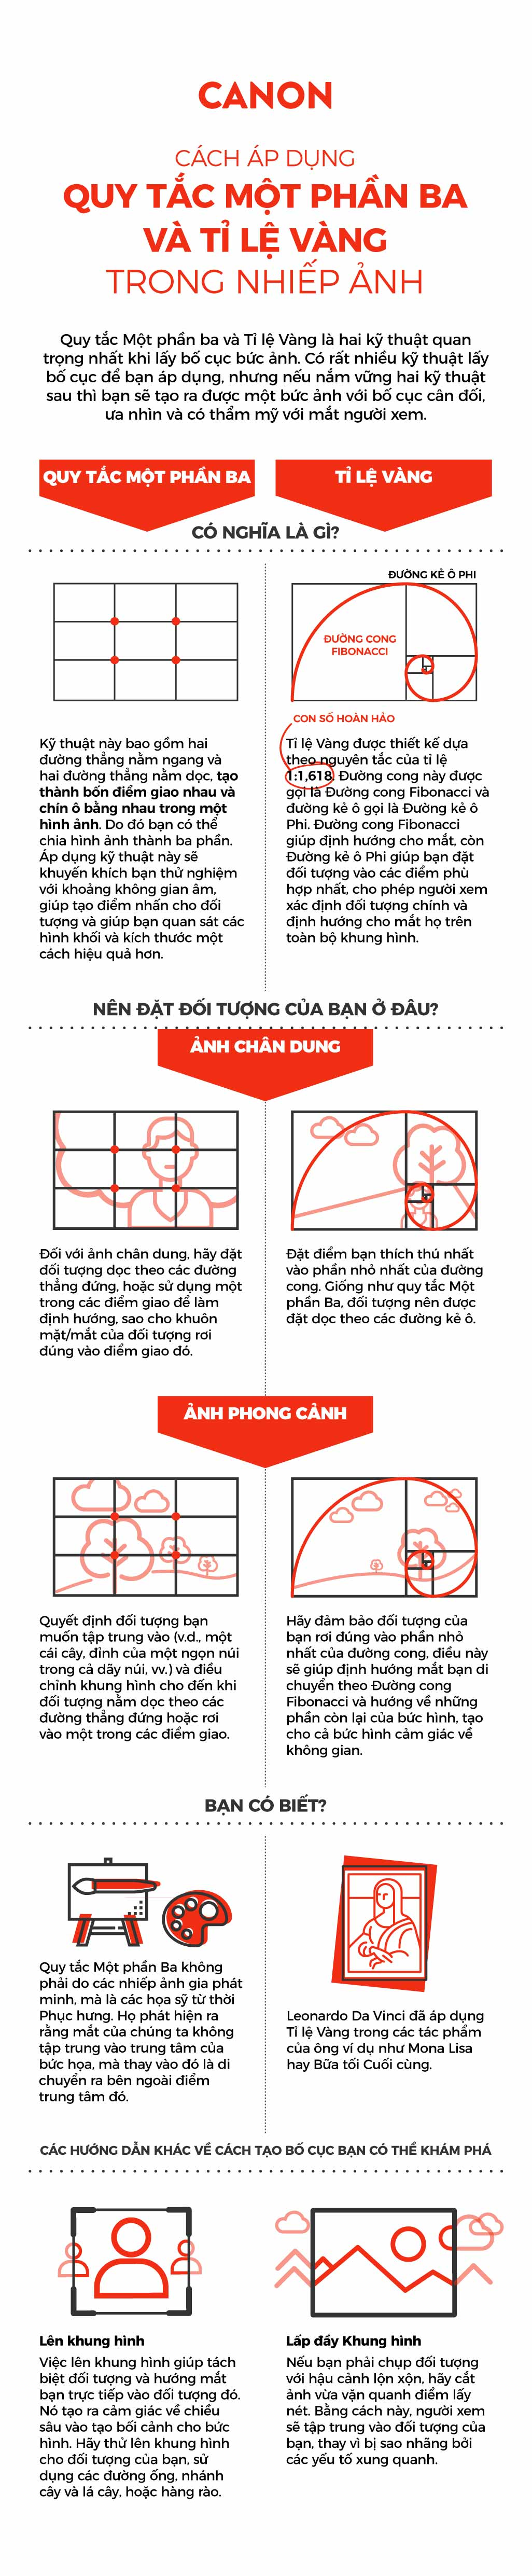 canon-infographics_rule-of-thirds-and-golden-ratio_viet